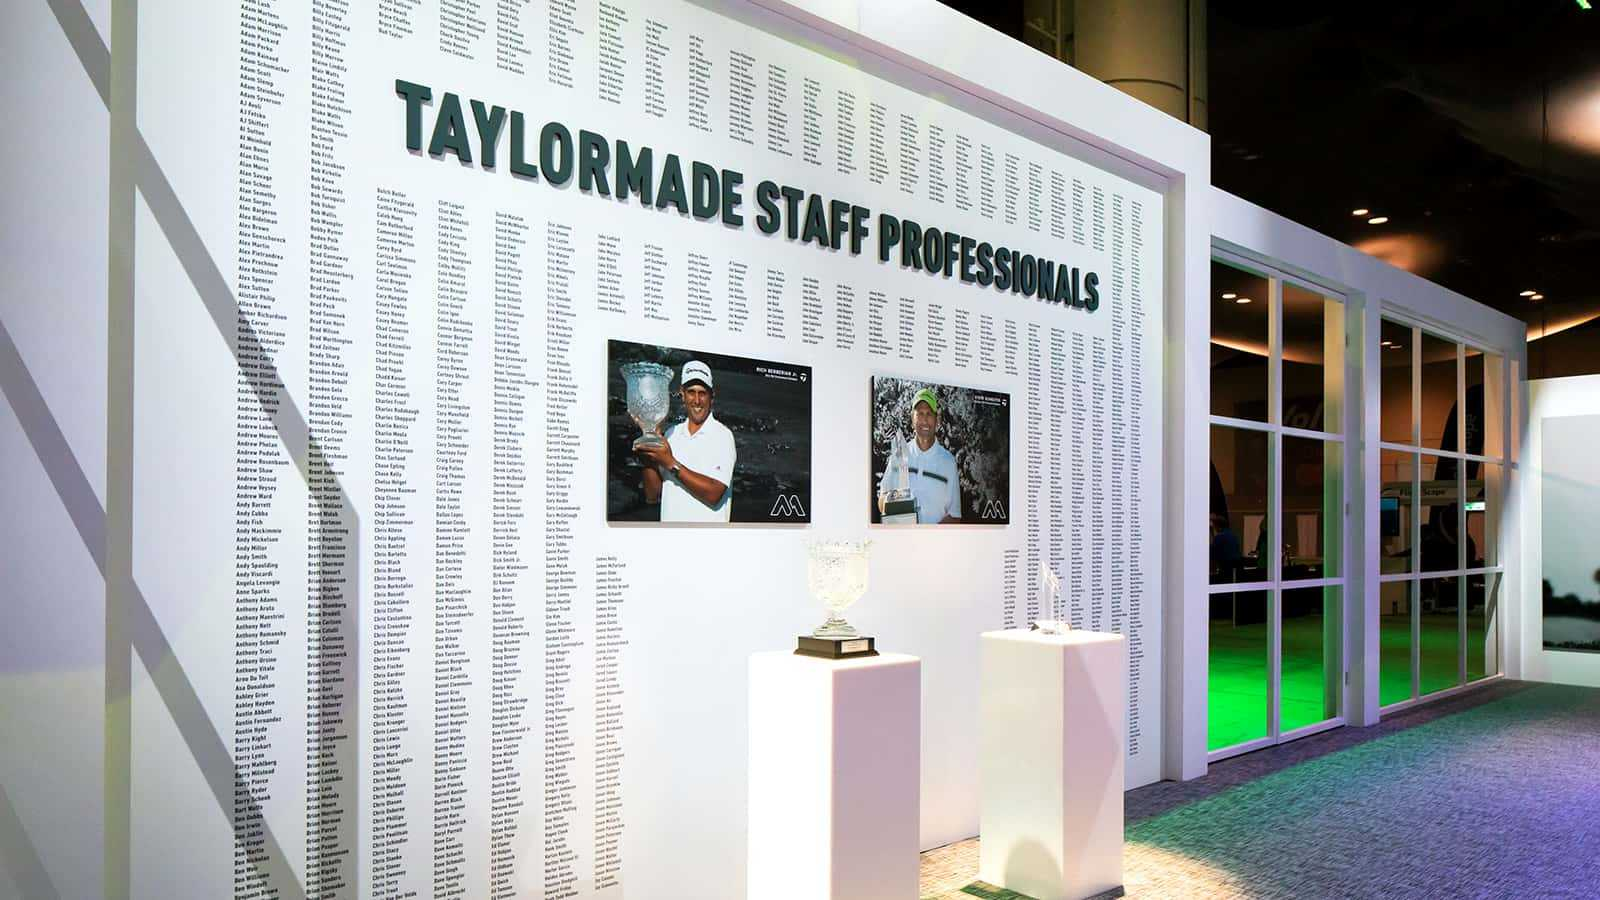 TaylorMade Staff Professionals display at the TaylorMade PGA Merchandise Show 2017 experience.